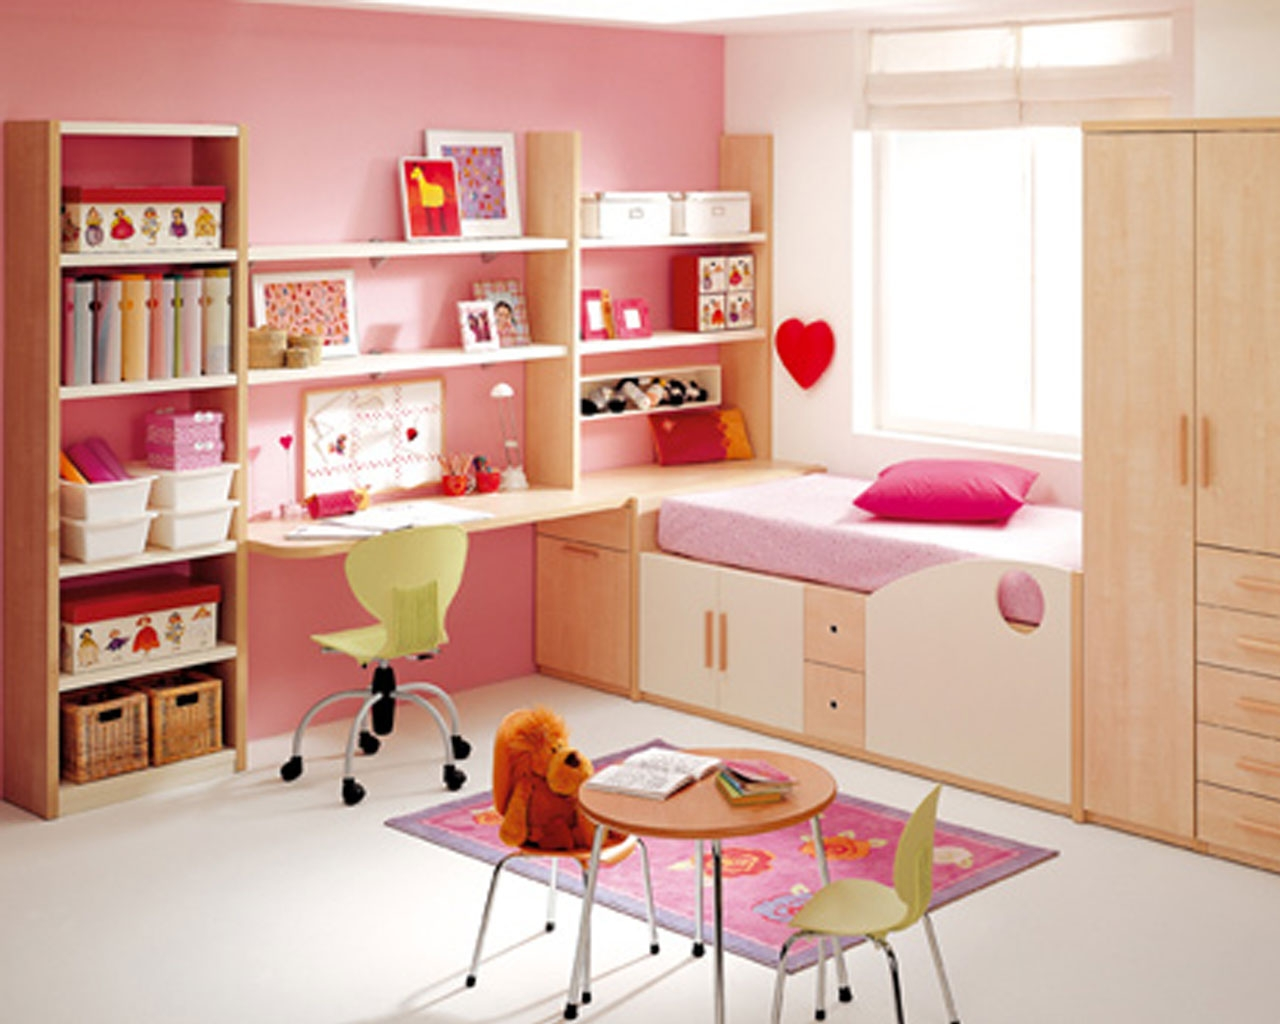 Pink Kids Home Decor With Cute Impression (View 5 of 10)